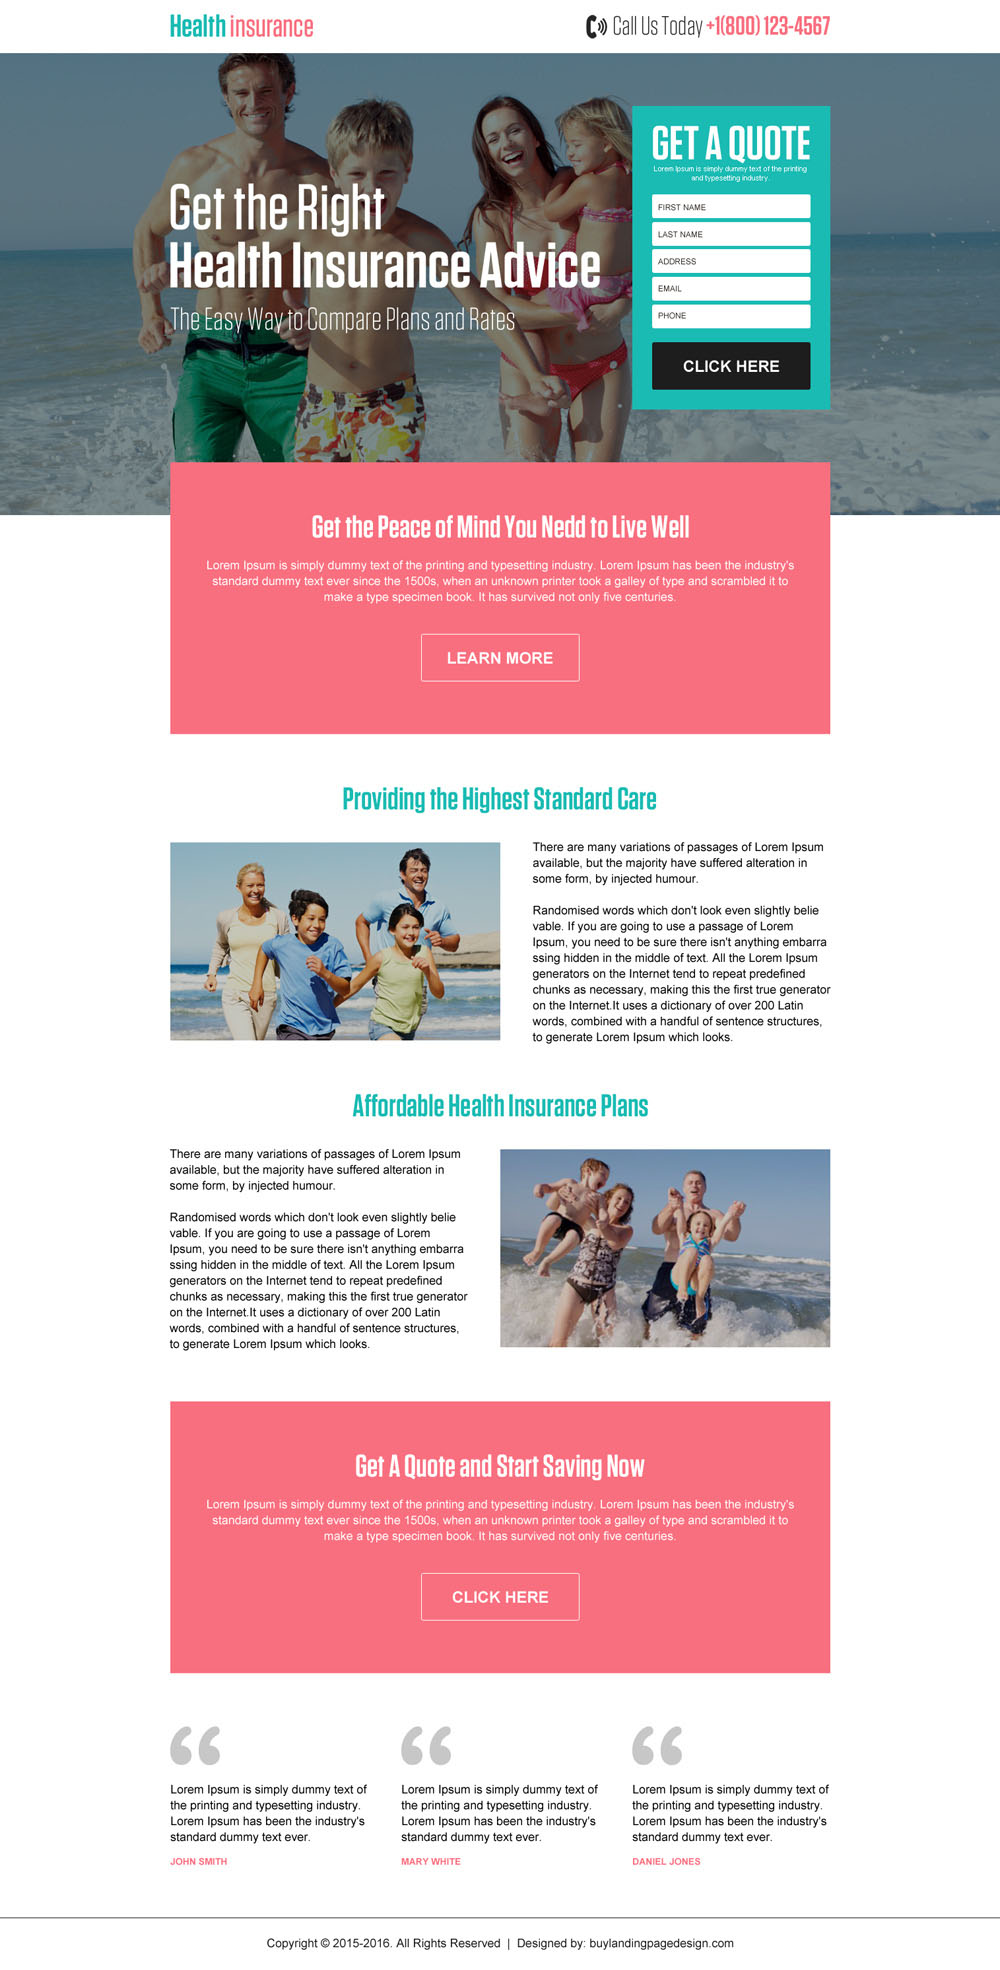 health-insurance-get-a-free-quote-advice-lead-capture-converting-landing-page-design-004